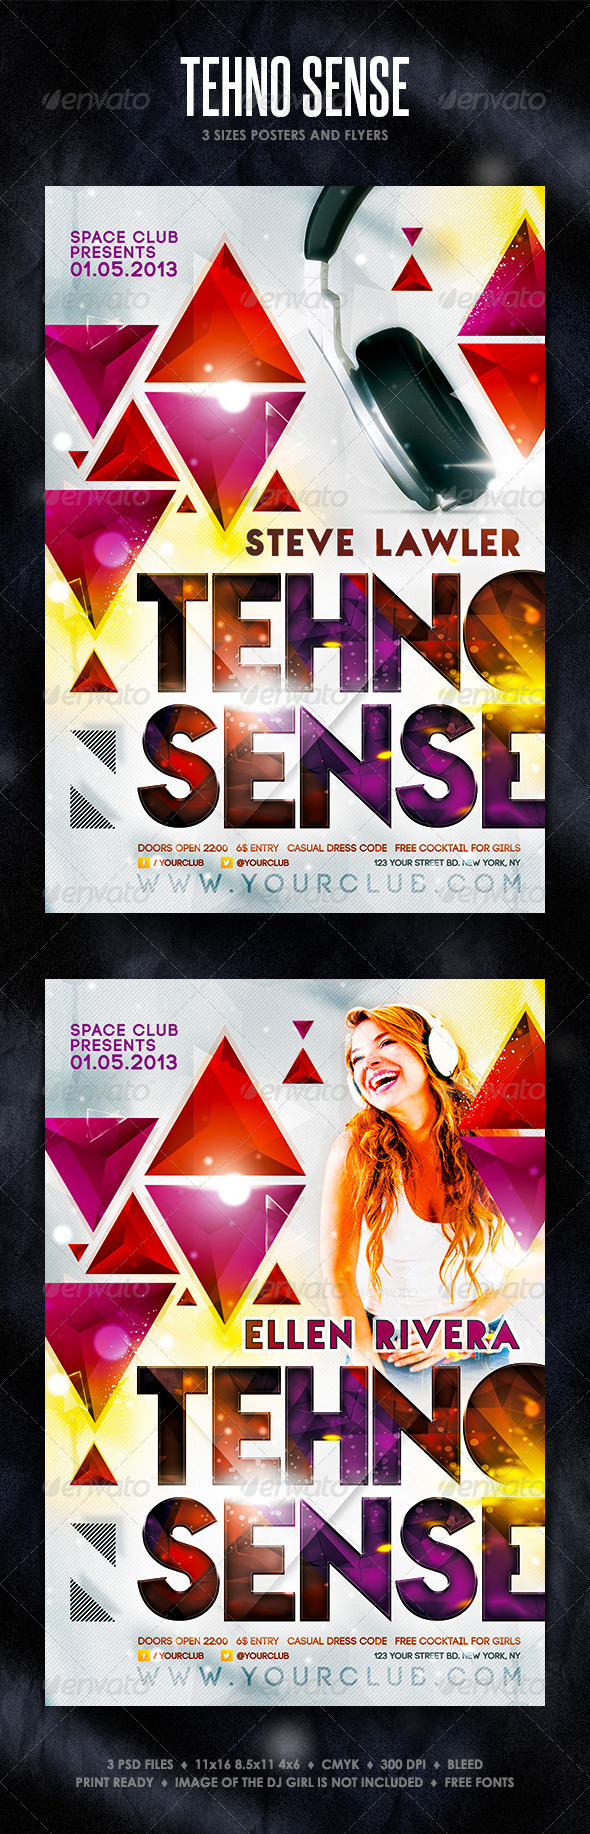 GraphicRiver Tehno Sense Posters and Flyers 4473558